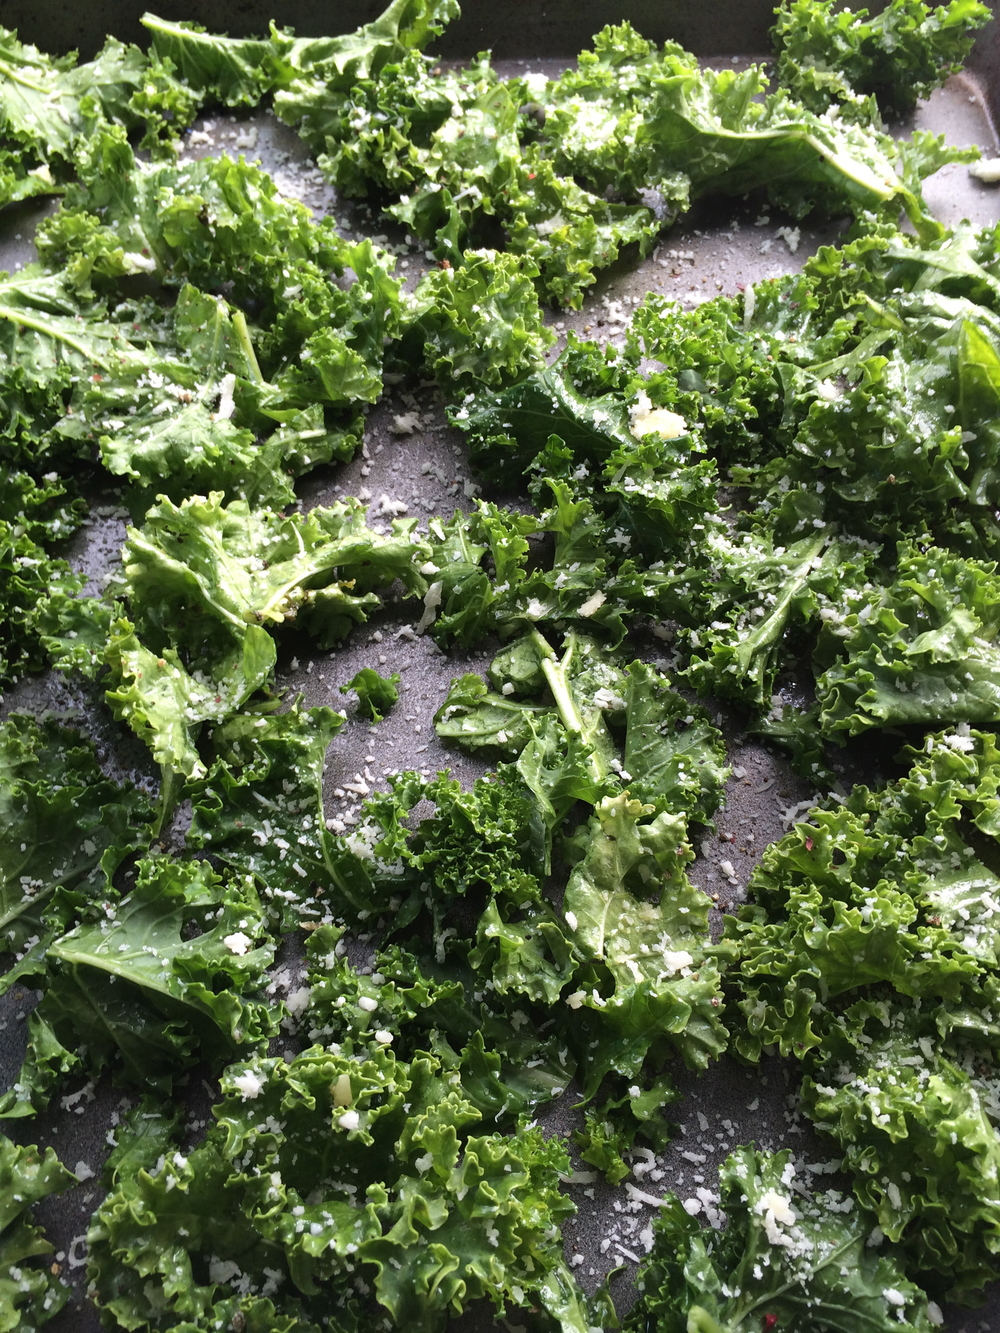 kale ready for cooking